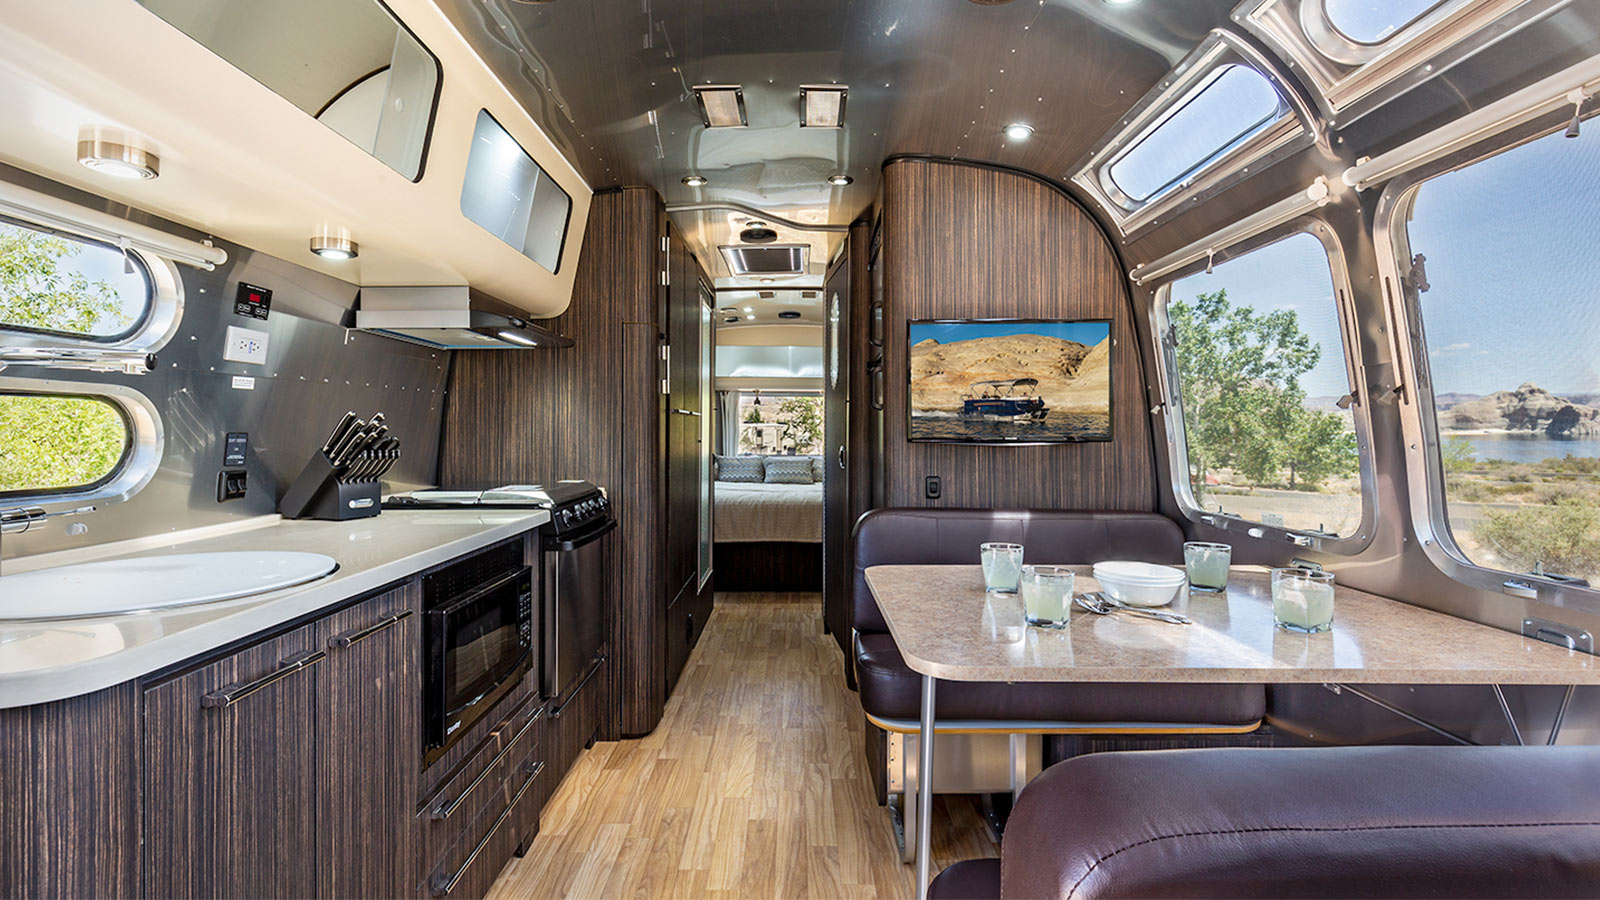 Airstream Interior - Kitchen & Dining